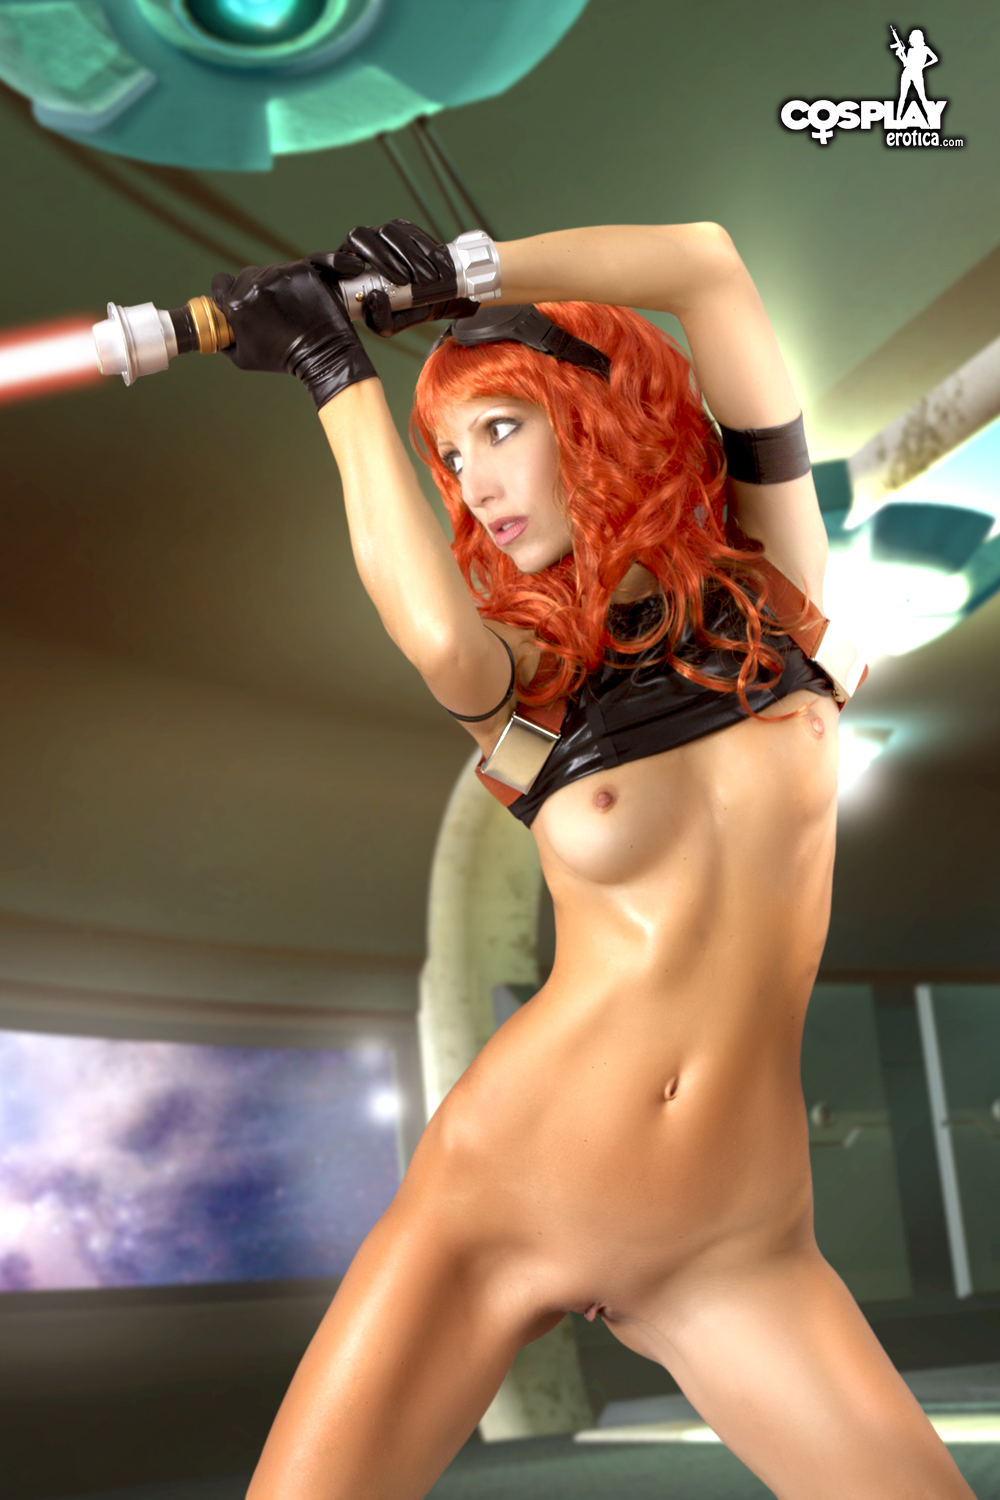 Mara elf skywalker nude sexual toons